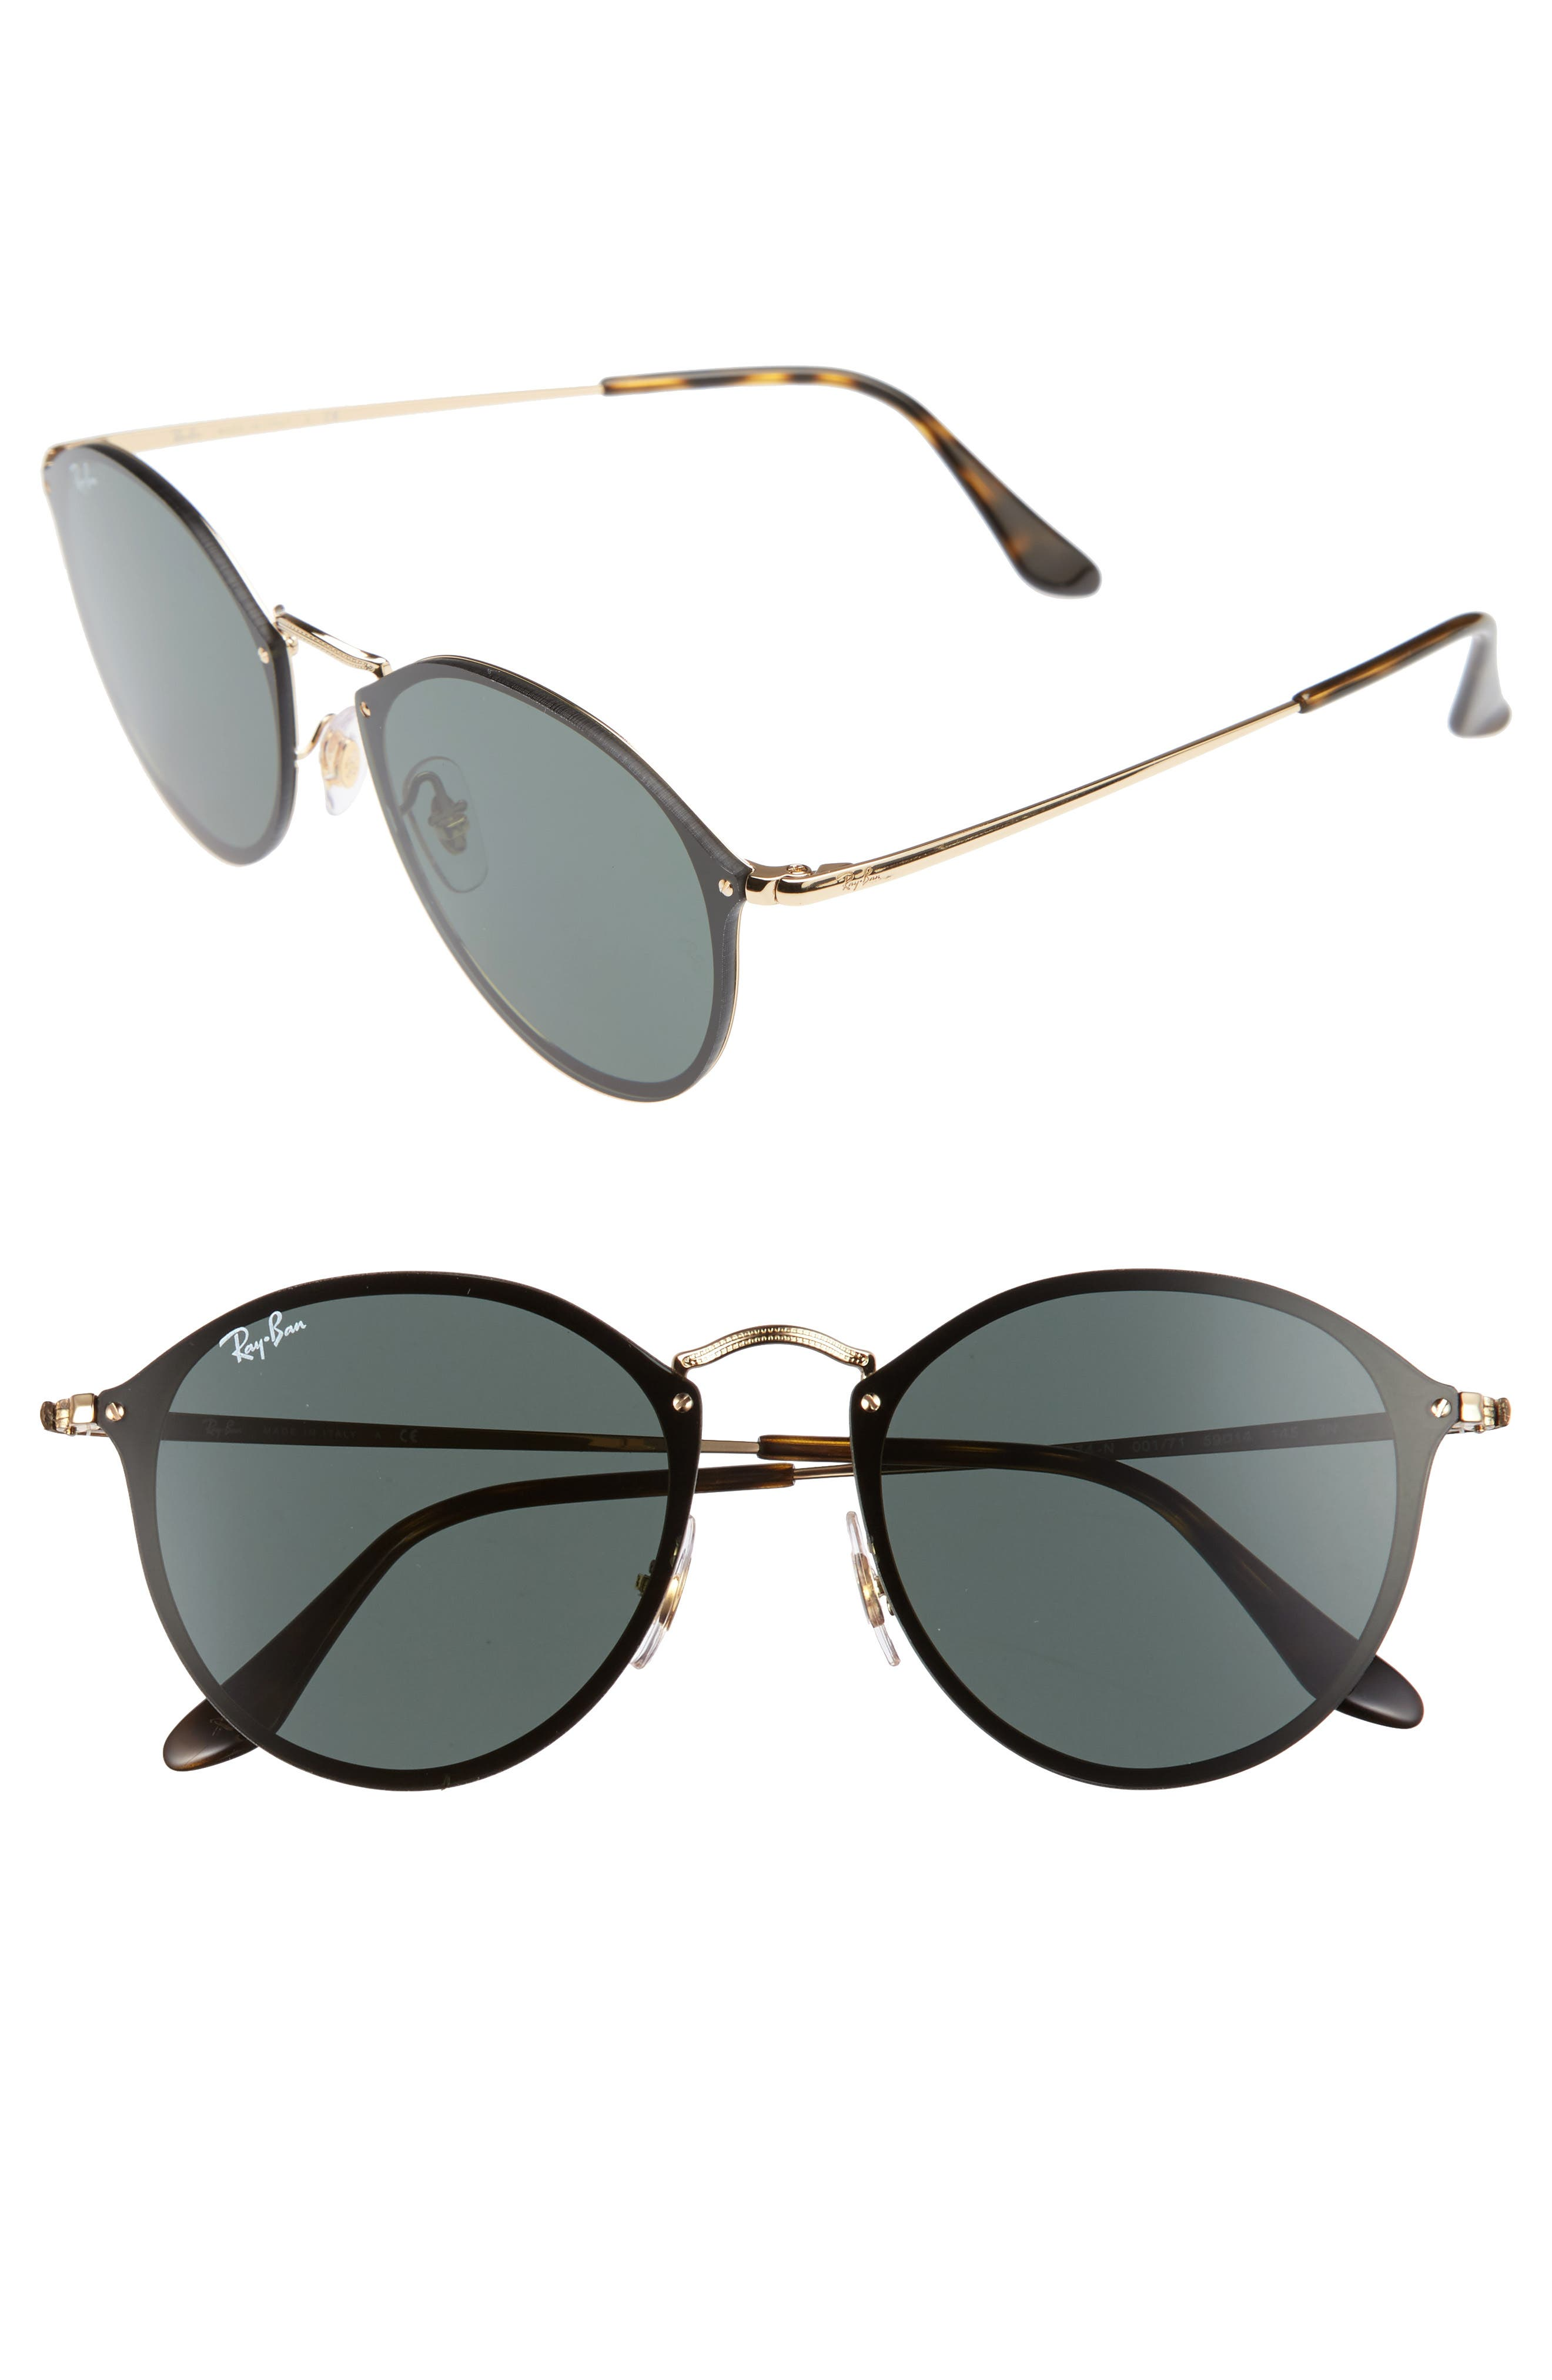 Blaze 59mm Round Sunglasses,                             Main thumbnail 1, color,                             GOLD/ GREEN